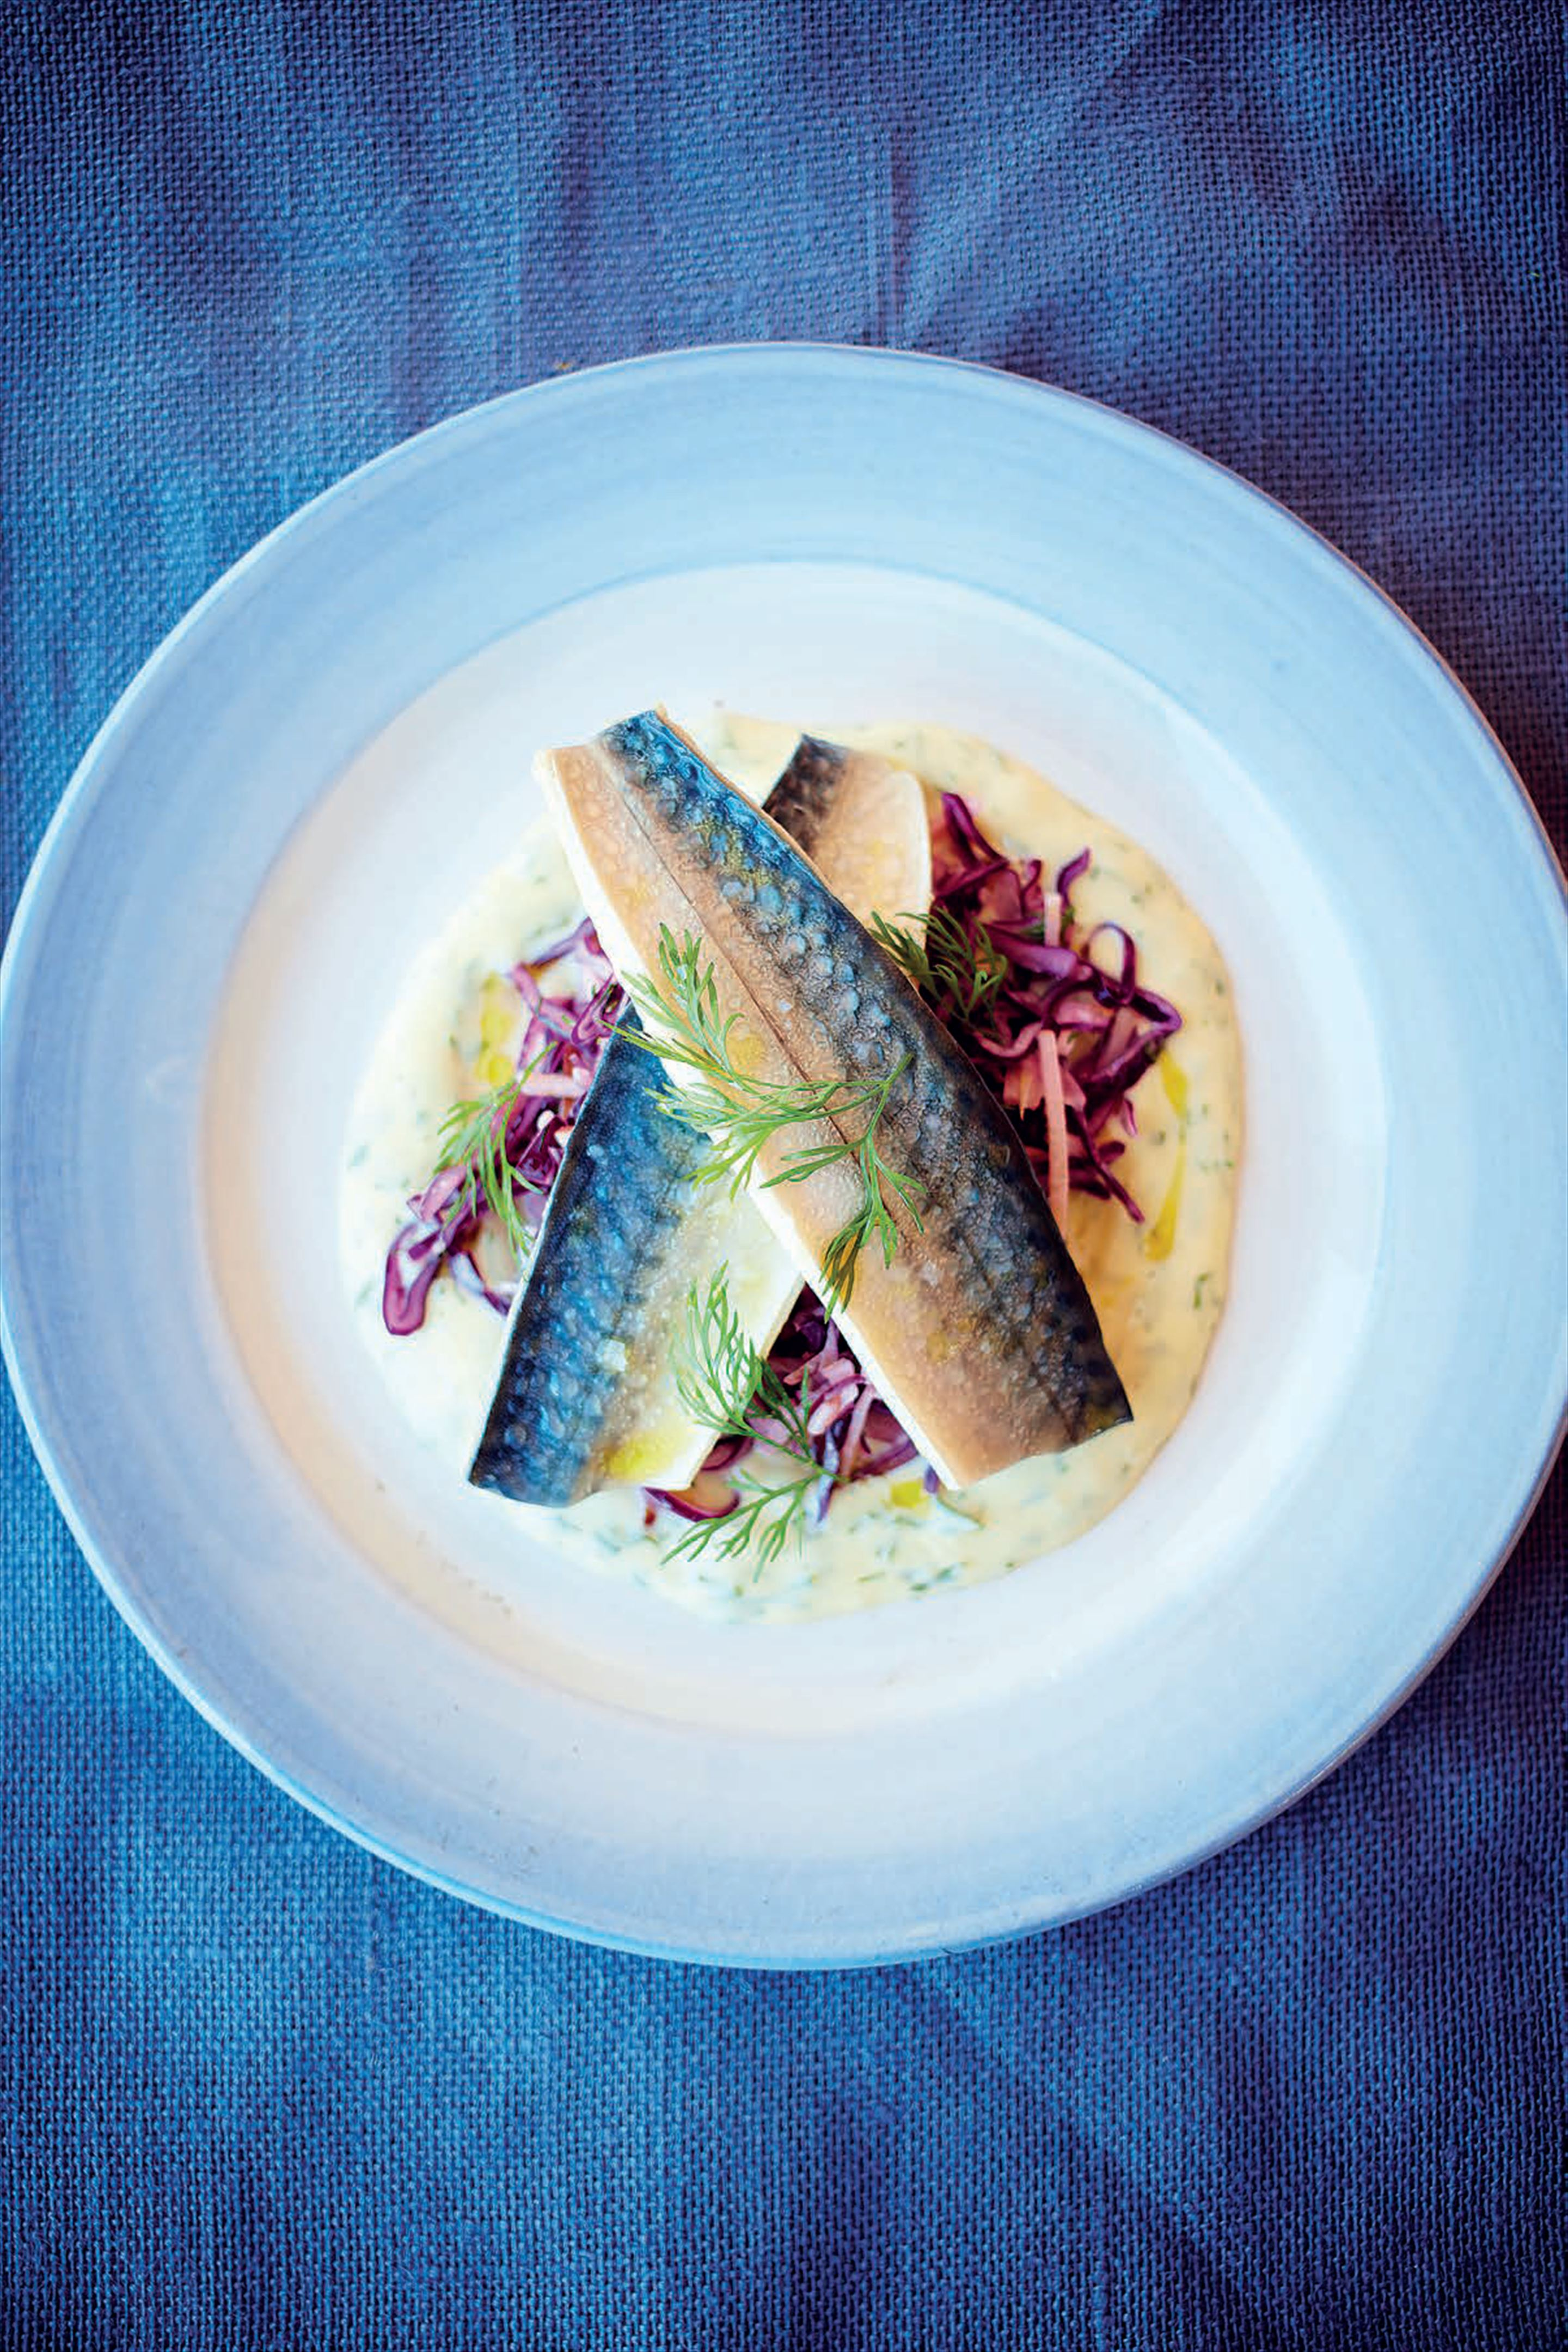 Pickled mackerel with red cabbage, apple and cider